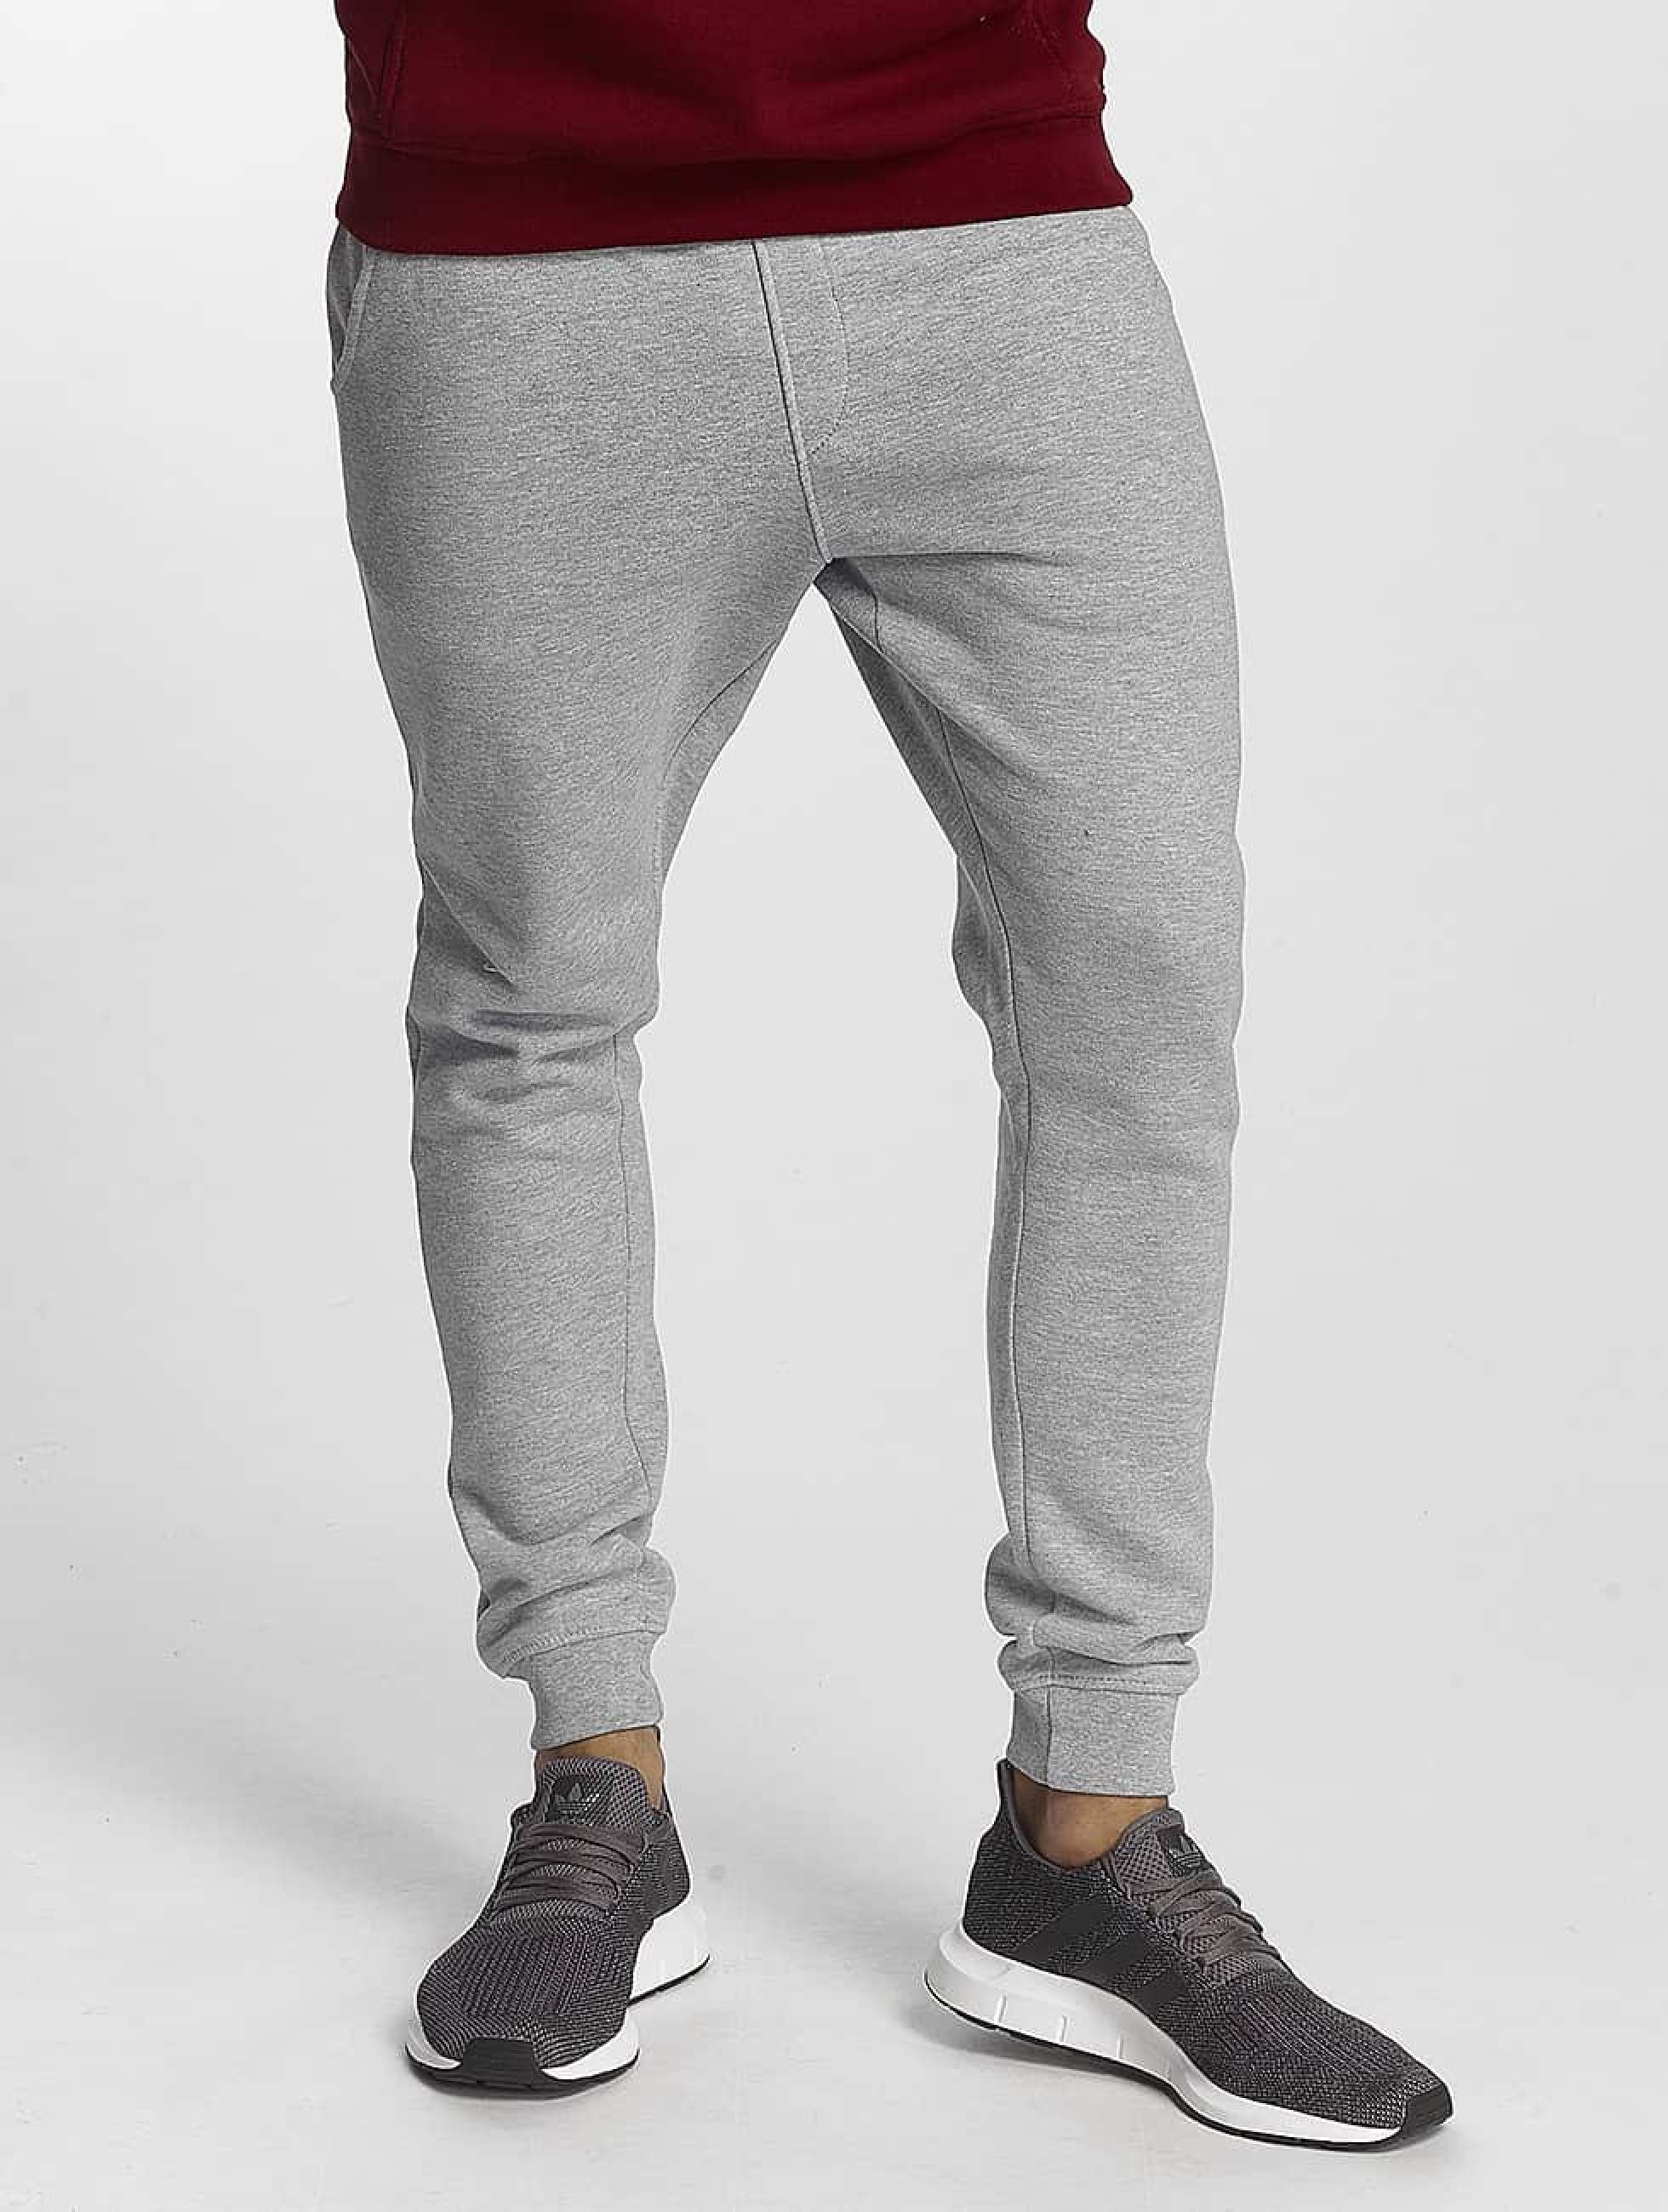 Cyprime / Sweat Pant Lithium in grey XL